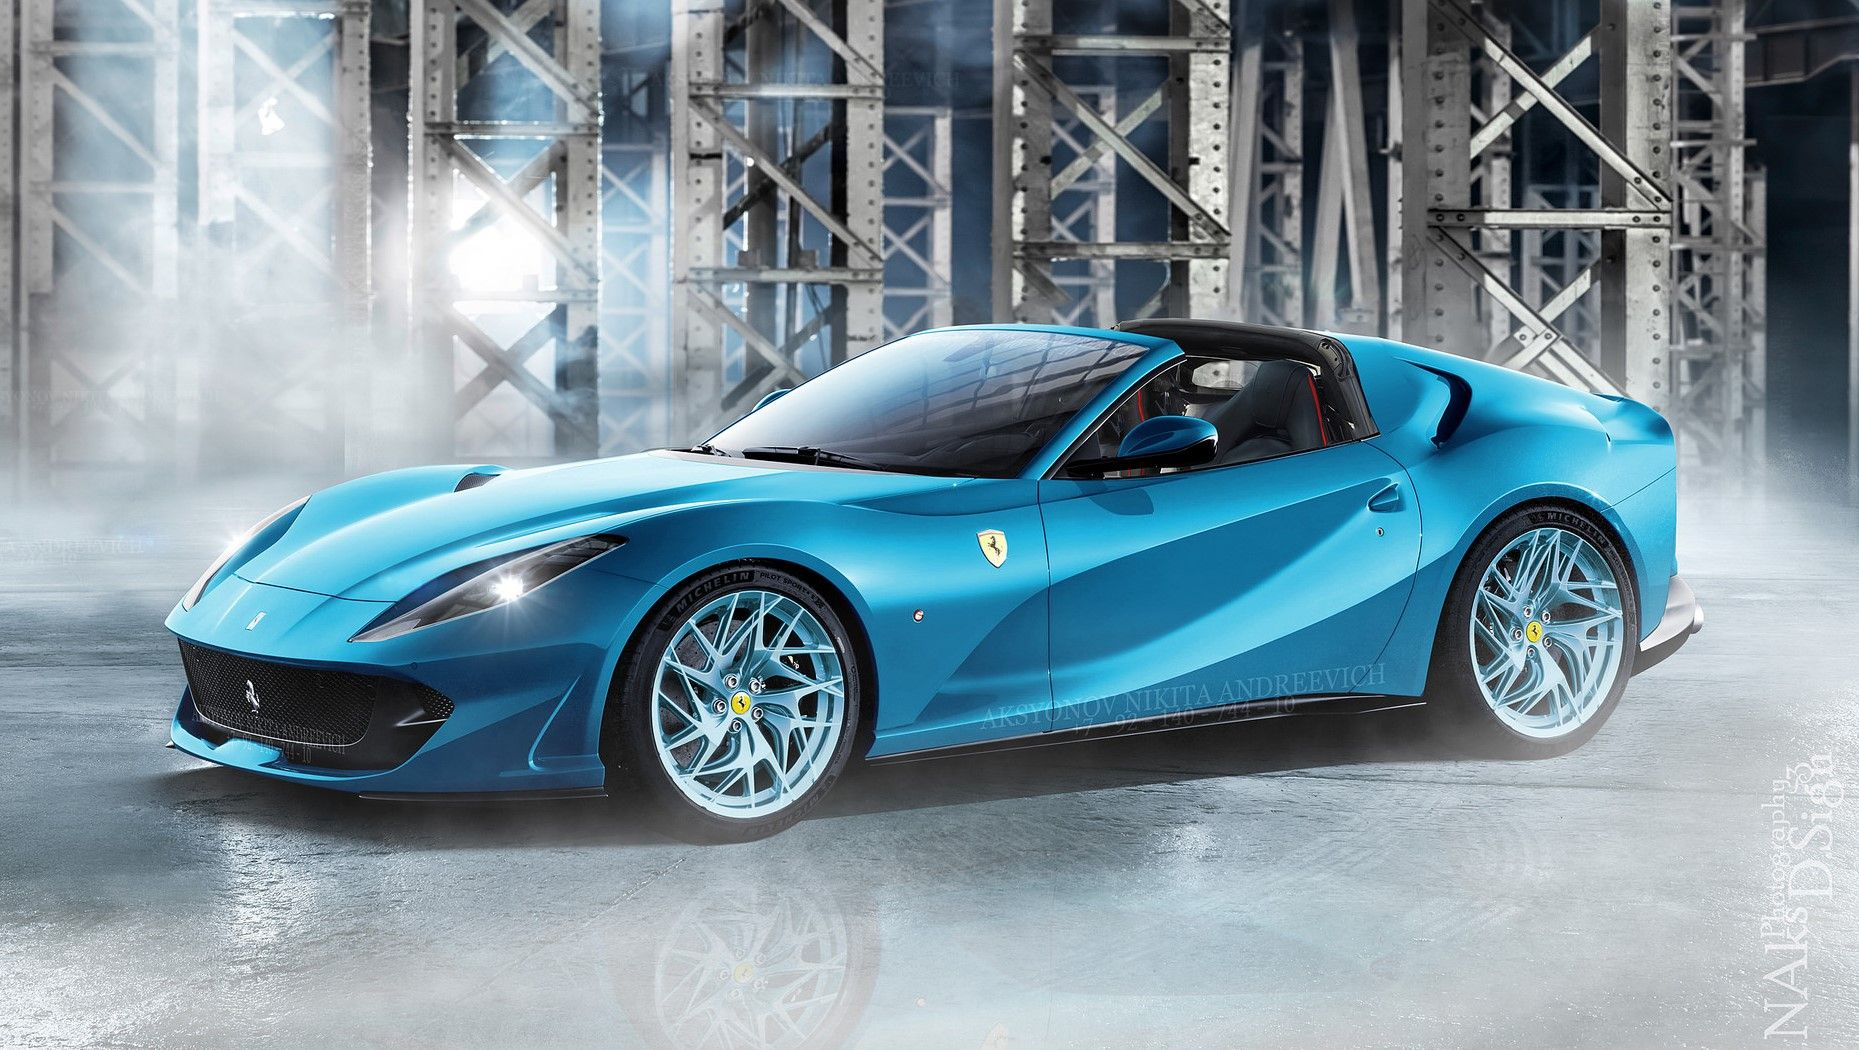 The 15 New Ferrari Models We Are Expecting (and Assuming) To Arrive Before 2022 #newferrari